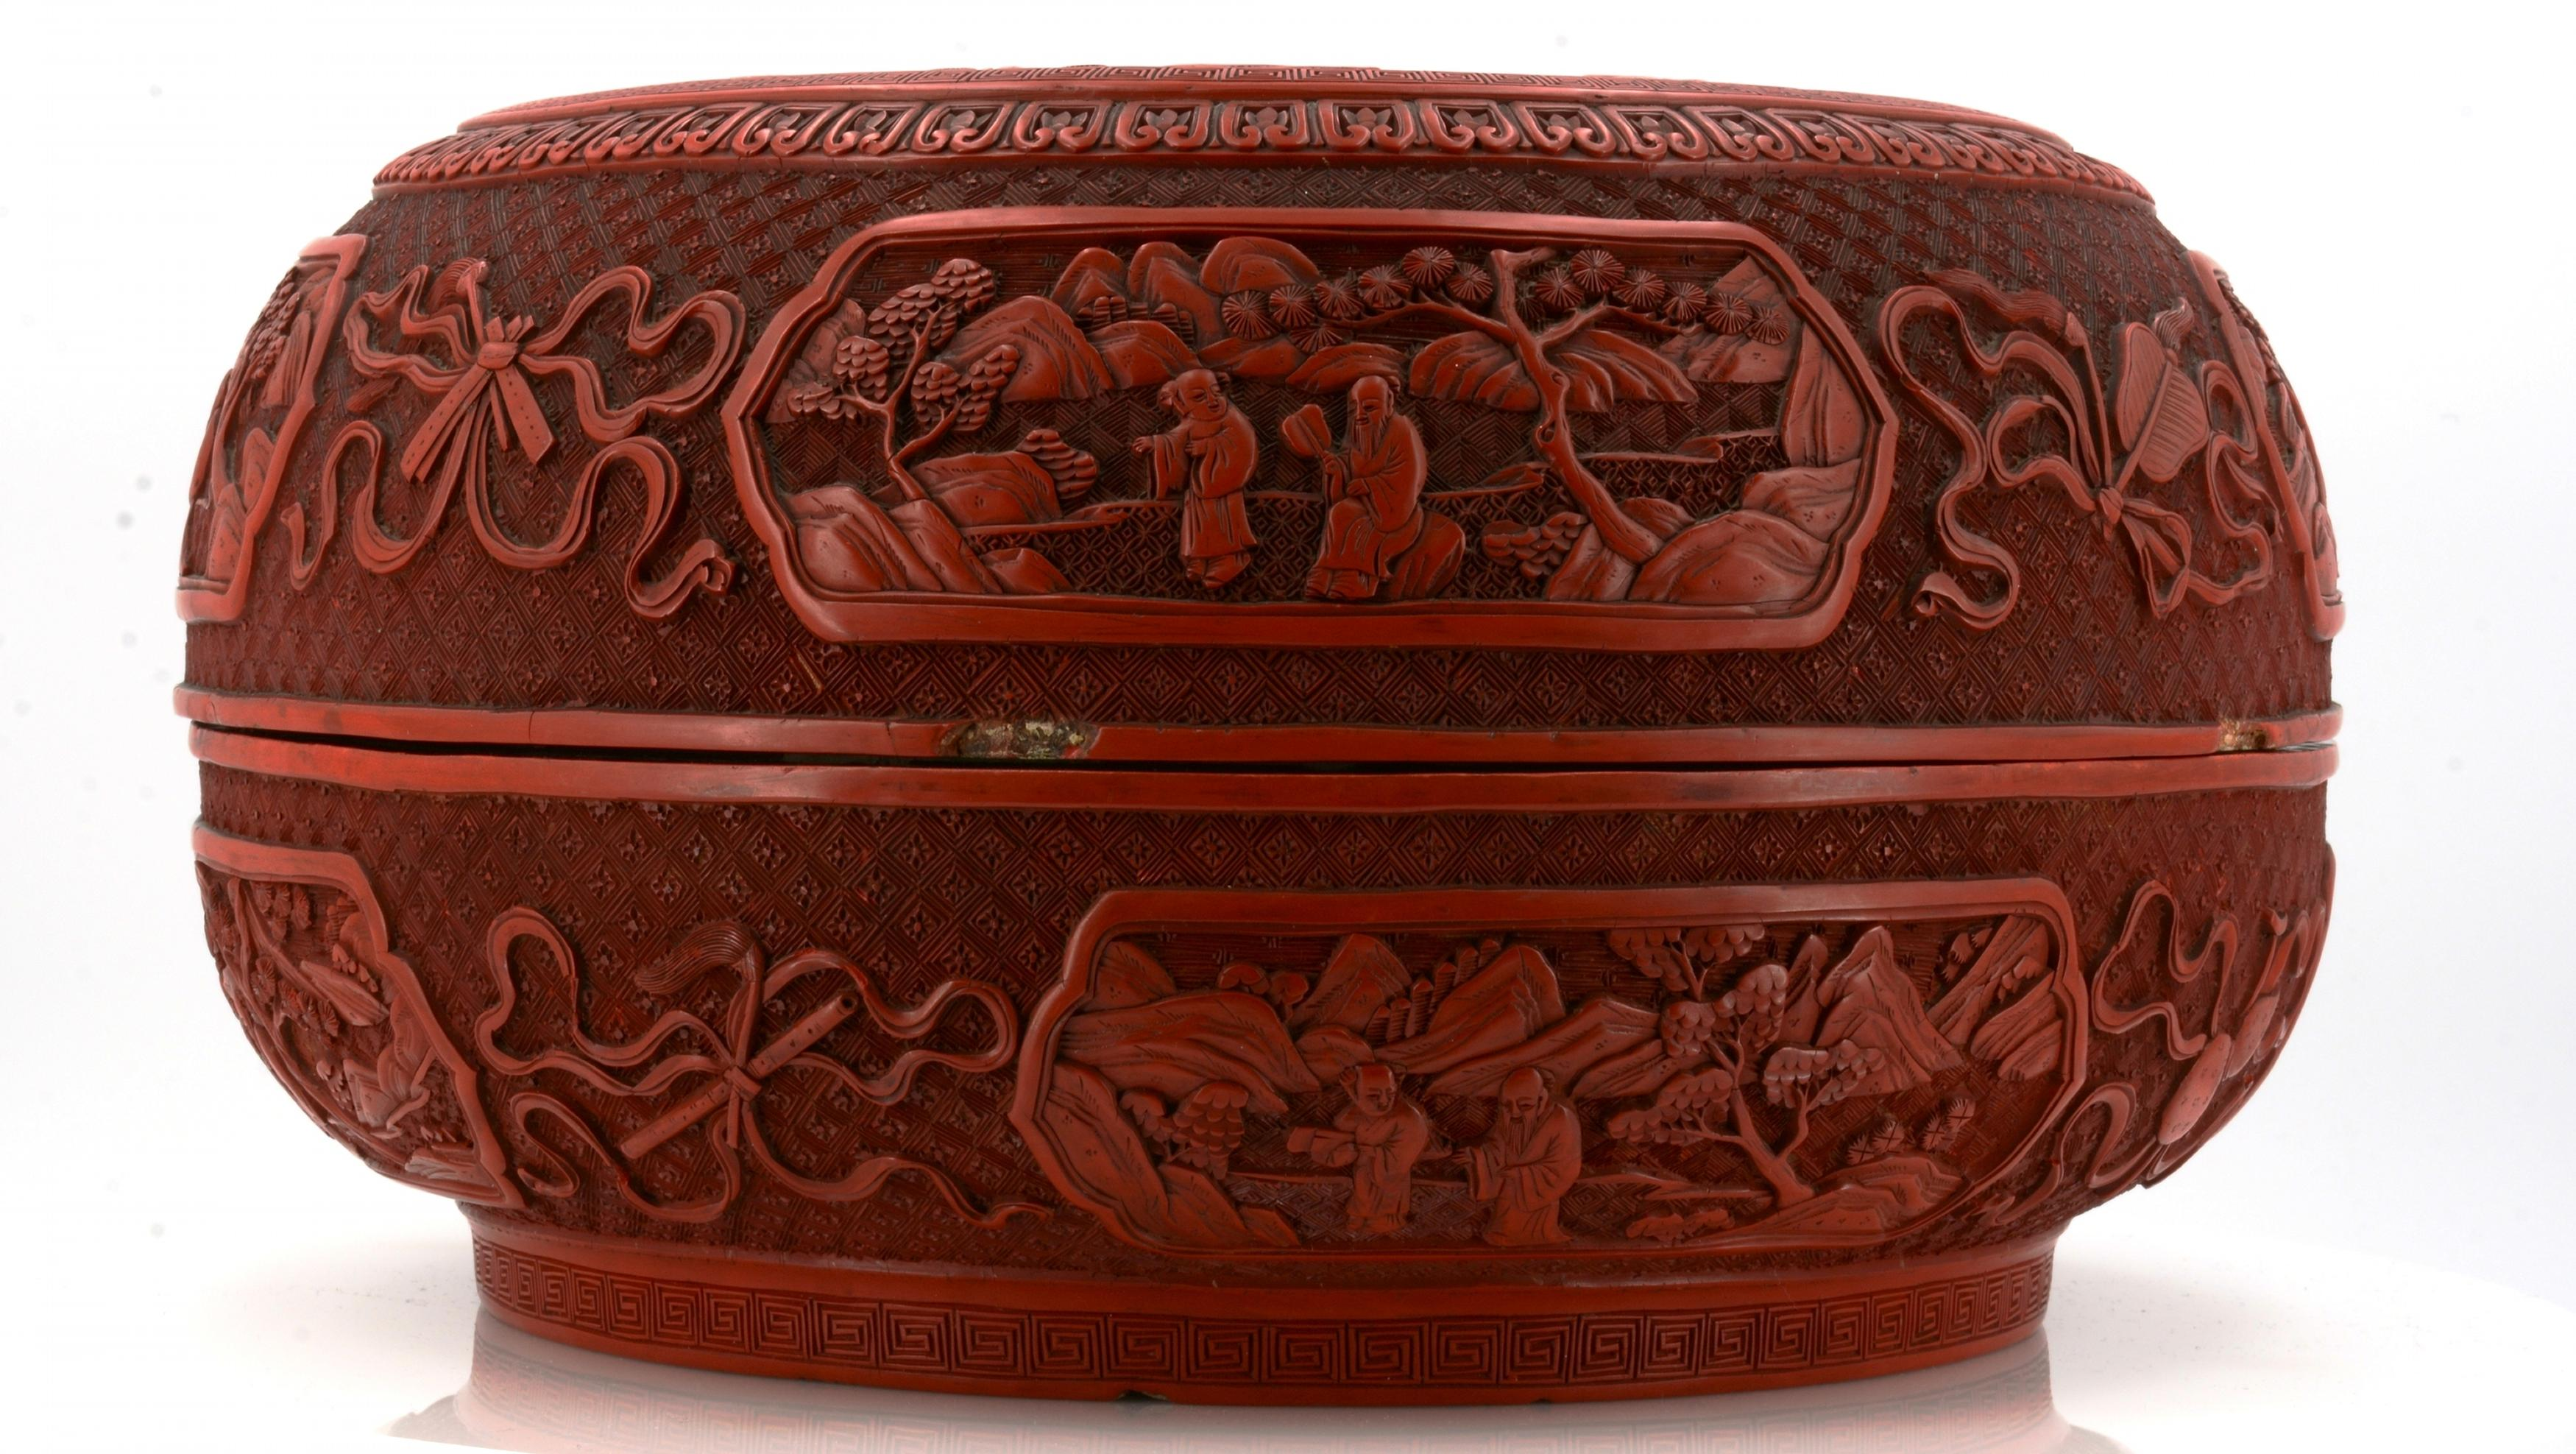 Lot 16 - IMPORTANT BOX WITH RED CARVED LACQUER. Origin: China. Dynasty: Qing dynasty. Date: 18th c.